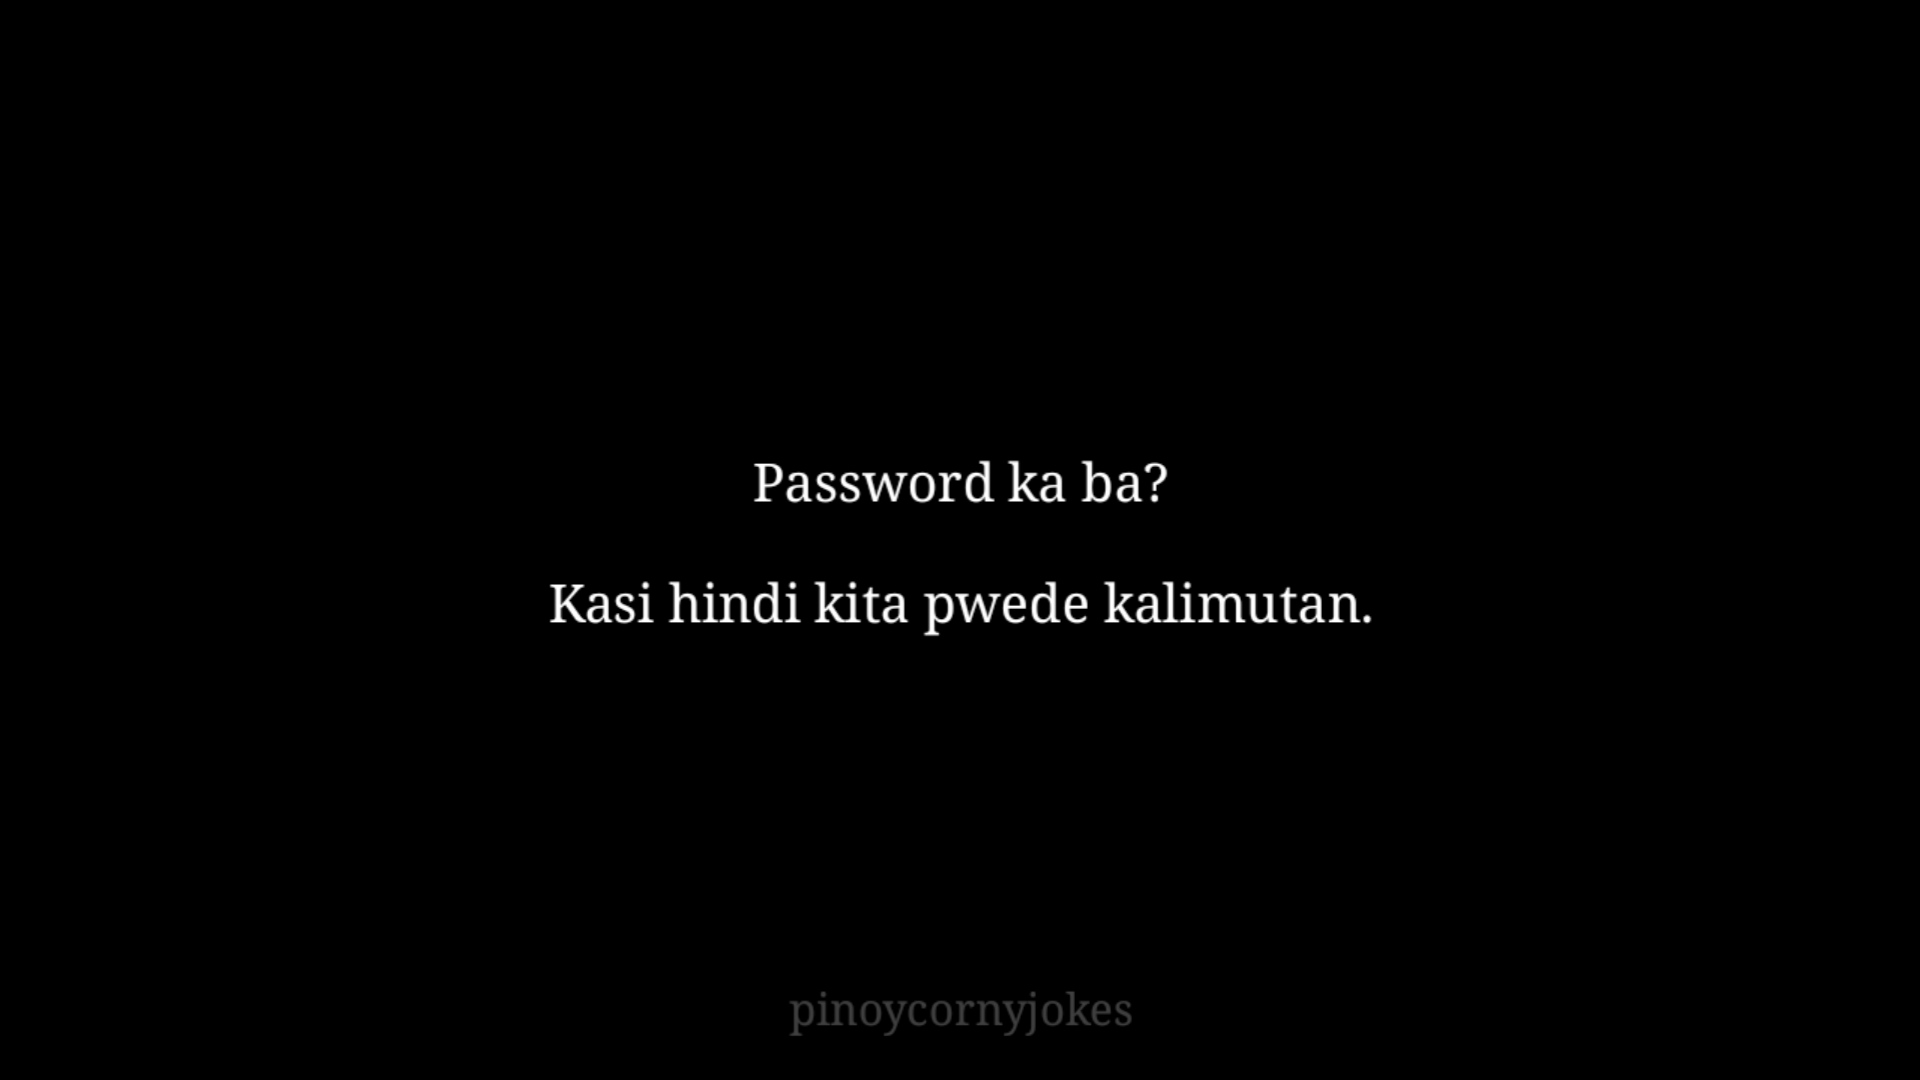 Password Pickup Lines Tagalog 2021